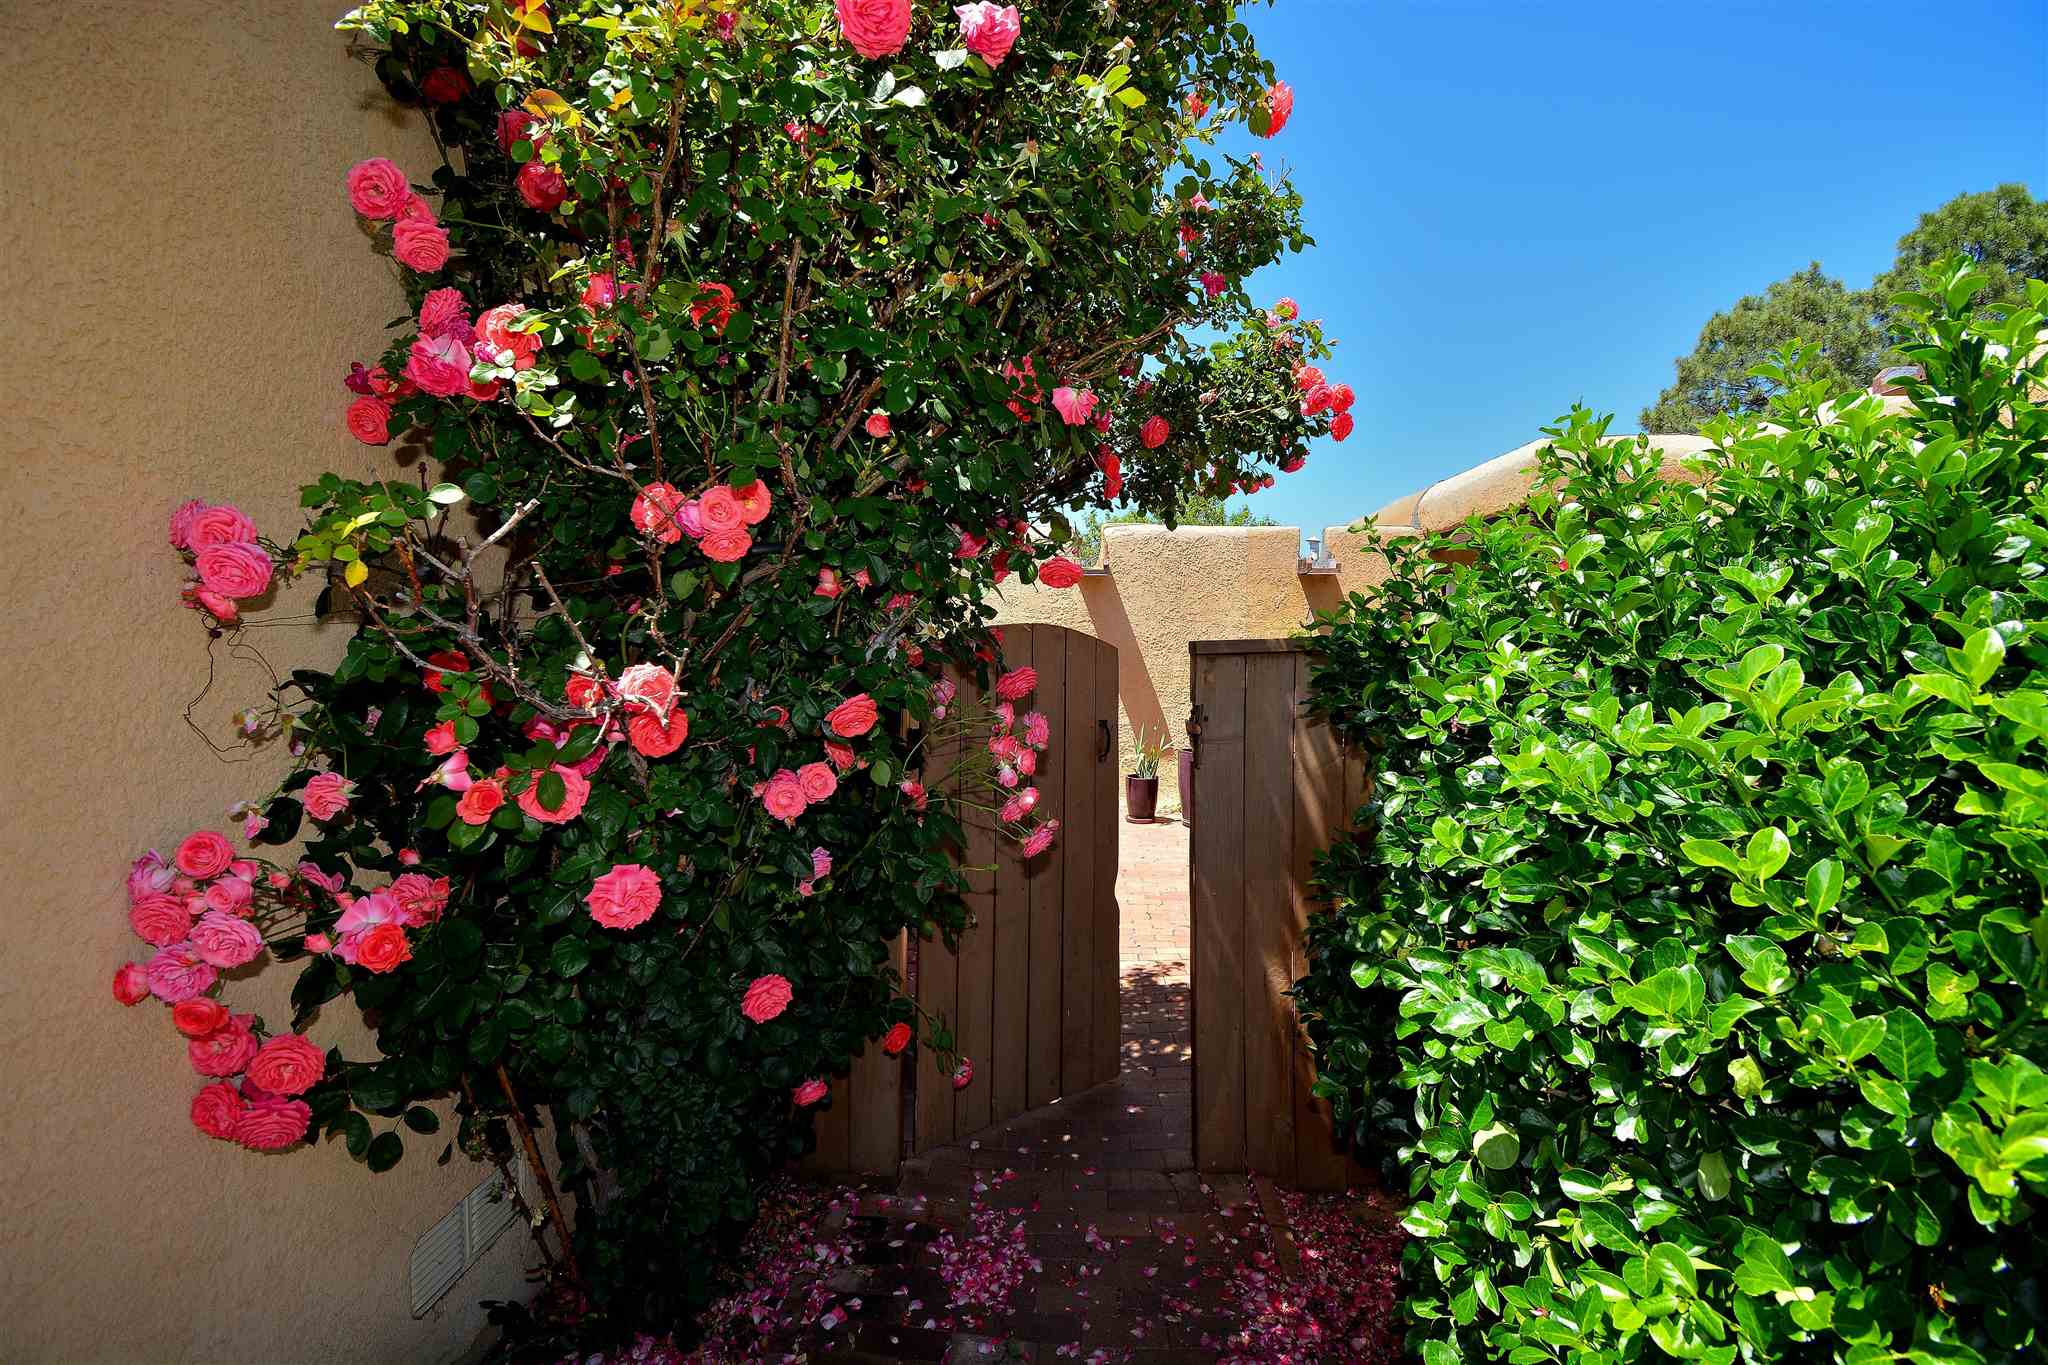 This darling townhouse in the coveted Park Plazas neighborhood has a cozy charm. From the spectacular rose bush covered entrance, to the dramatic corner kiva fireplace, this home is cute!  There are two bedrooms and an added sunroom/office that opens to the back patio with a colorful awning. Seller has added an extra high wall around the back yard for peace and privacy. The carpet is newer and the home has been lovingly maintained. Centrally located in Santa Fe, Park Plazas is a verdant oasis with miles of walking trails, a community garden, state-of-the-art tennis and pickleball courts, off-leash dog park and basketball and children's play areas. Don't miss this great home!